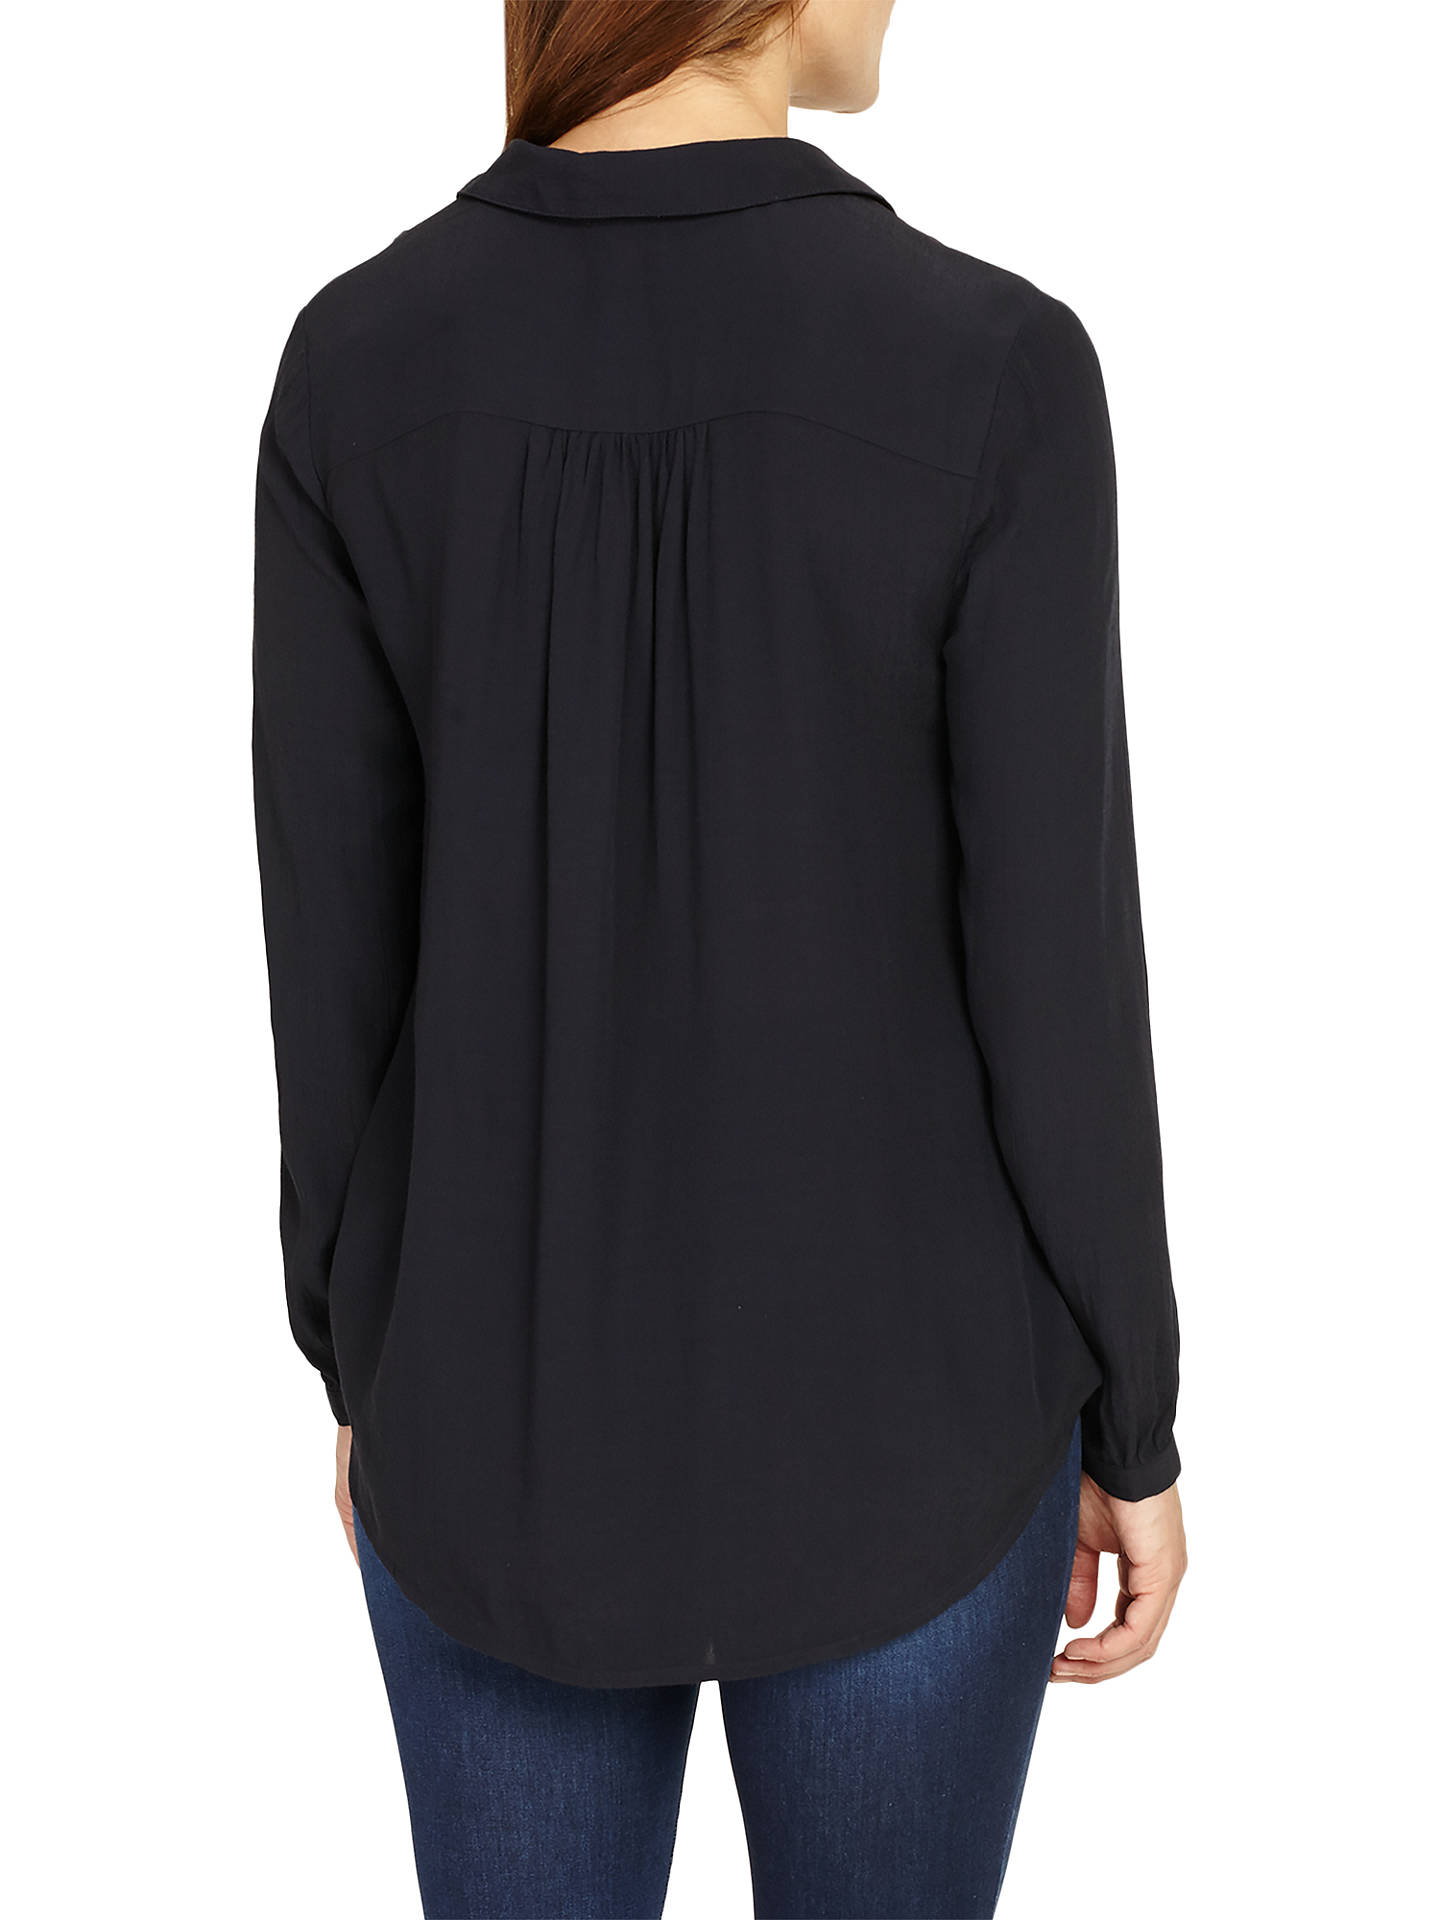 BuyPhase Eight Poppy Cross Over Blouse, Navy, 8 Online at johnlewis.com